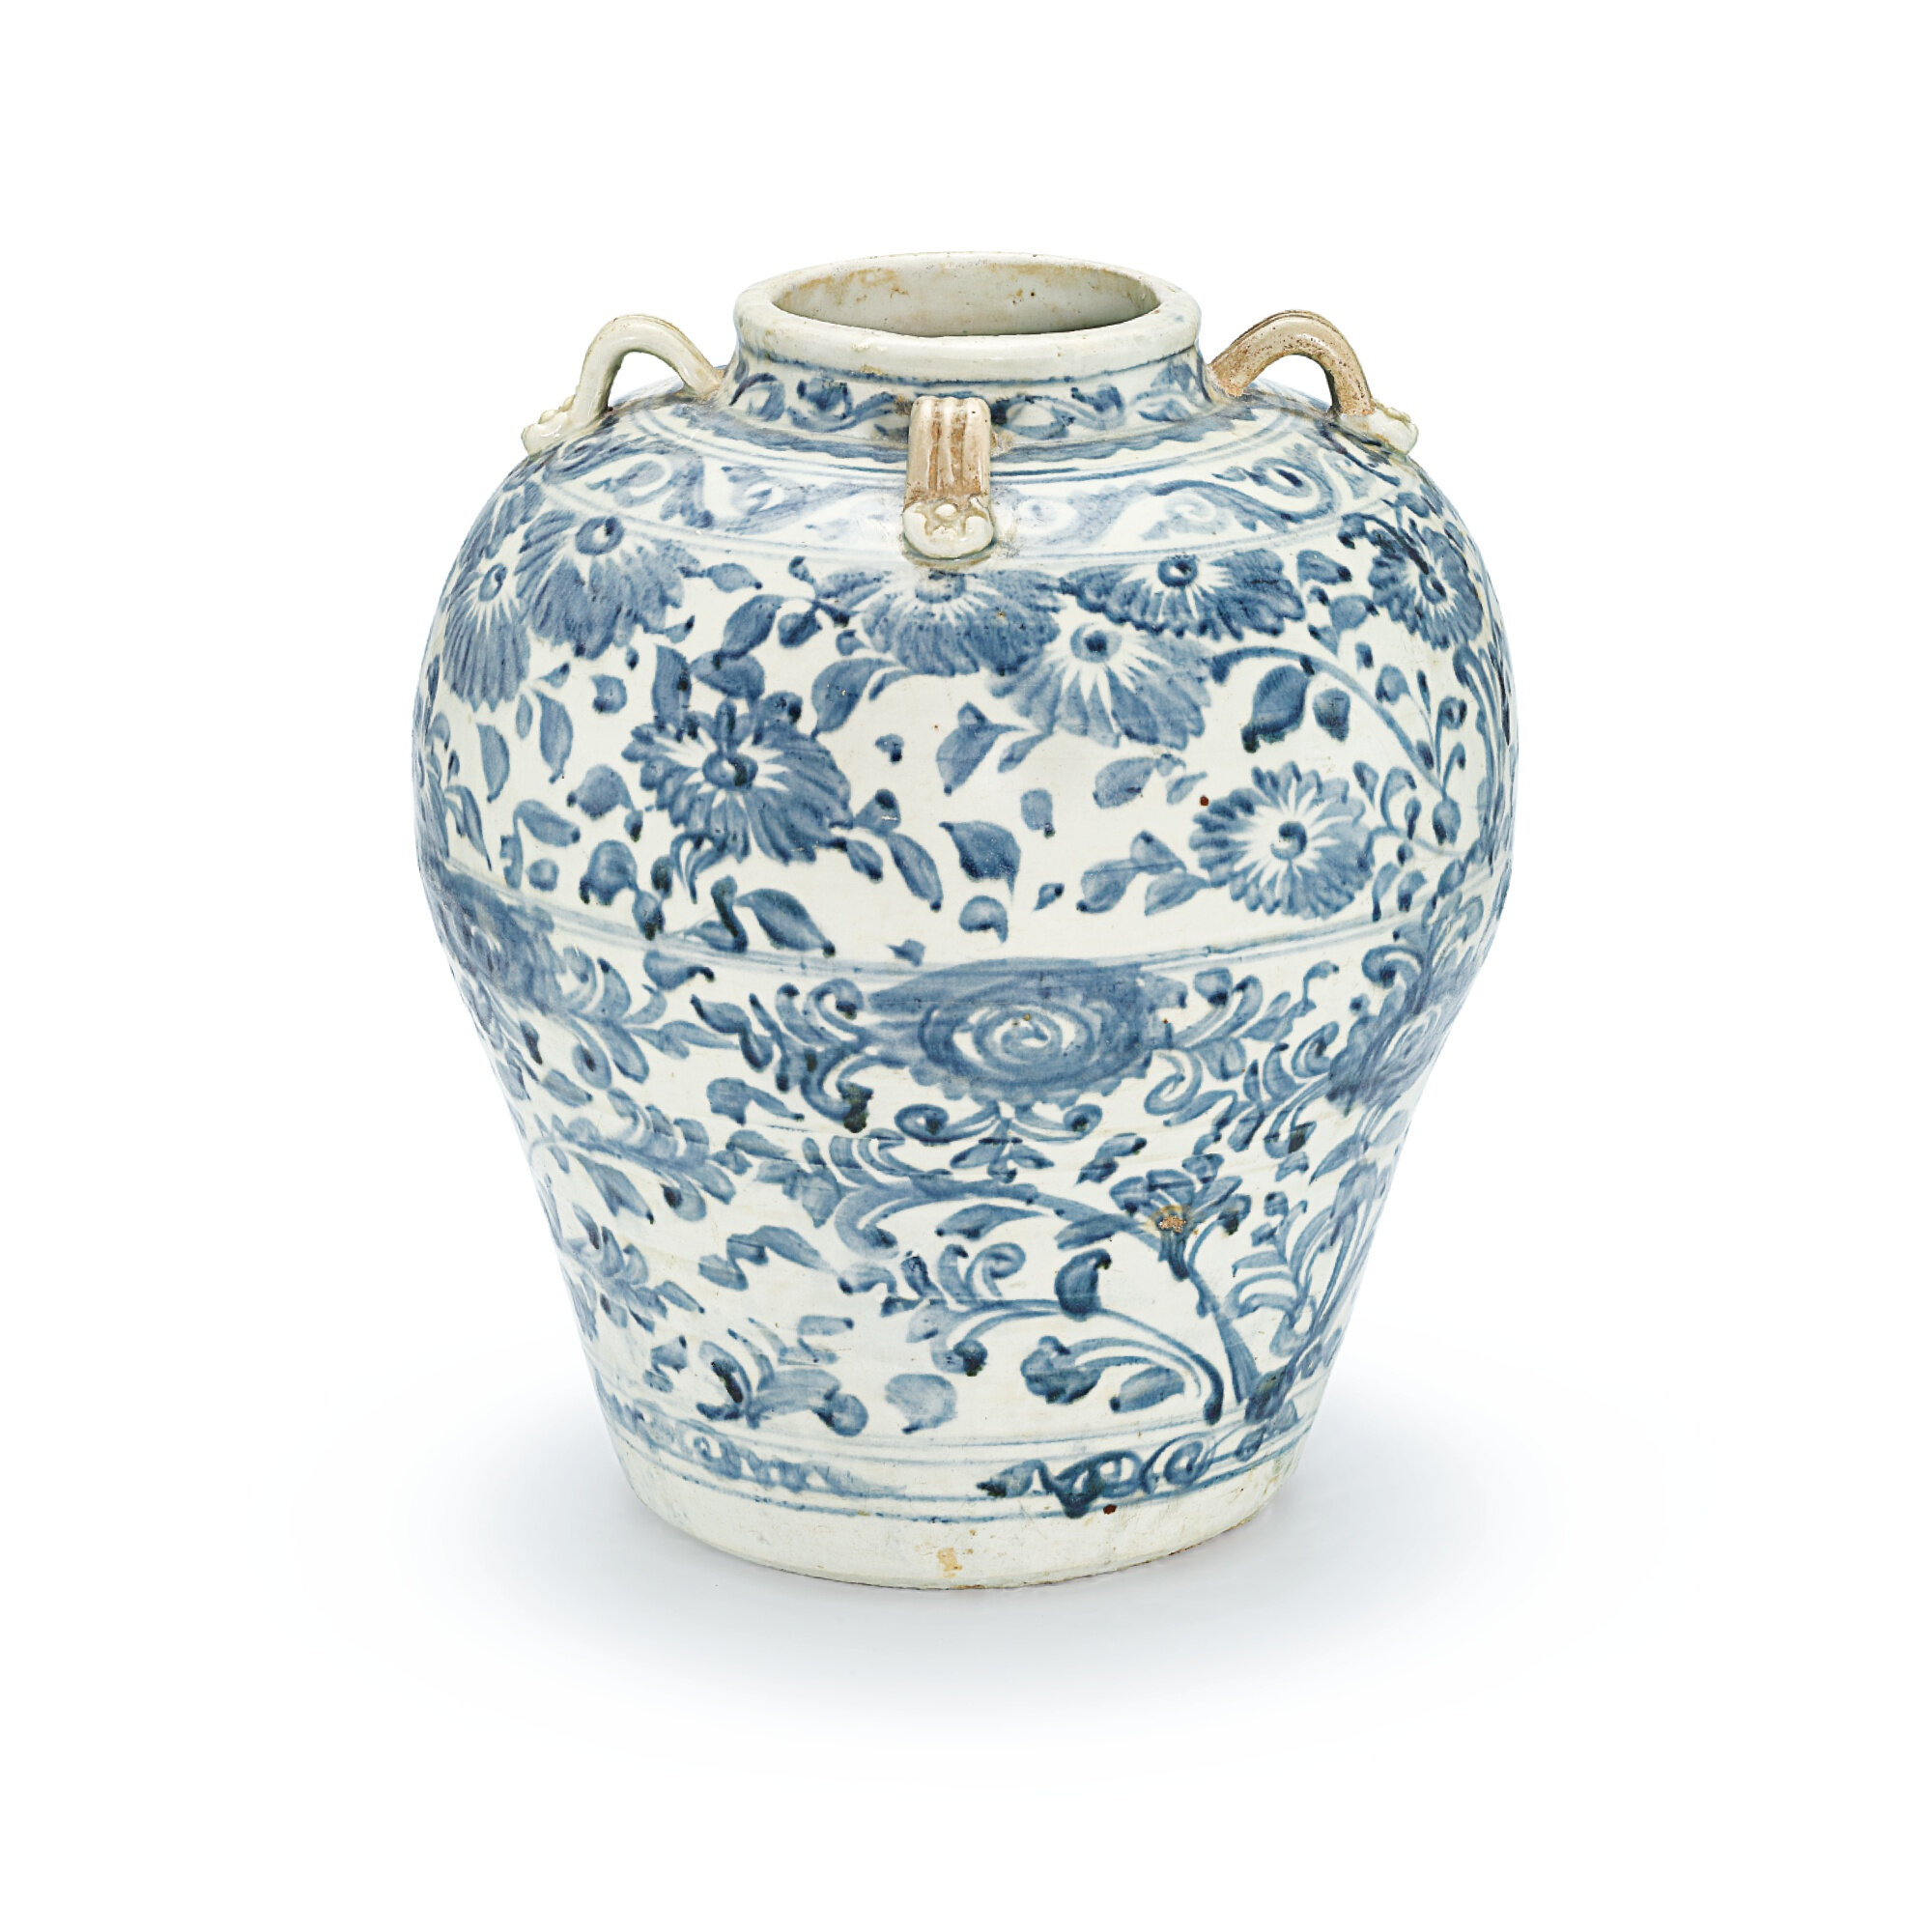 A large blue and white 'floral' handled jar, probably Vietnam, 15th century